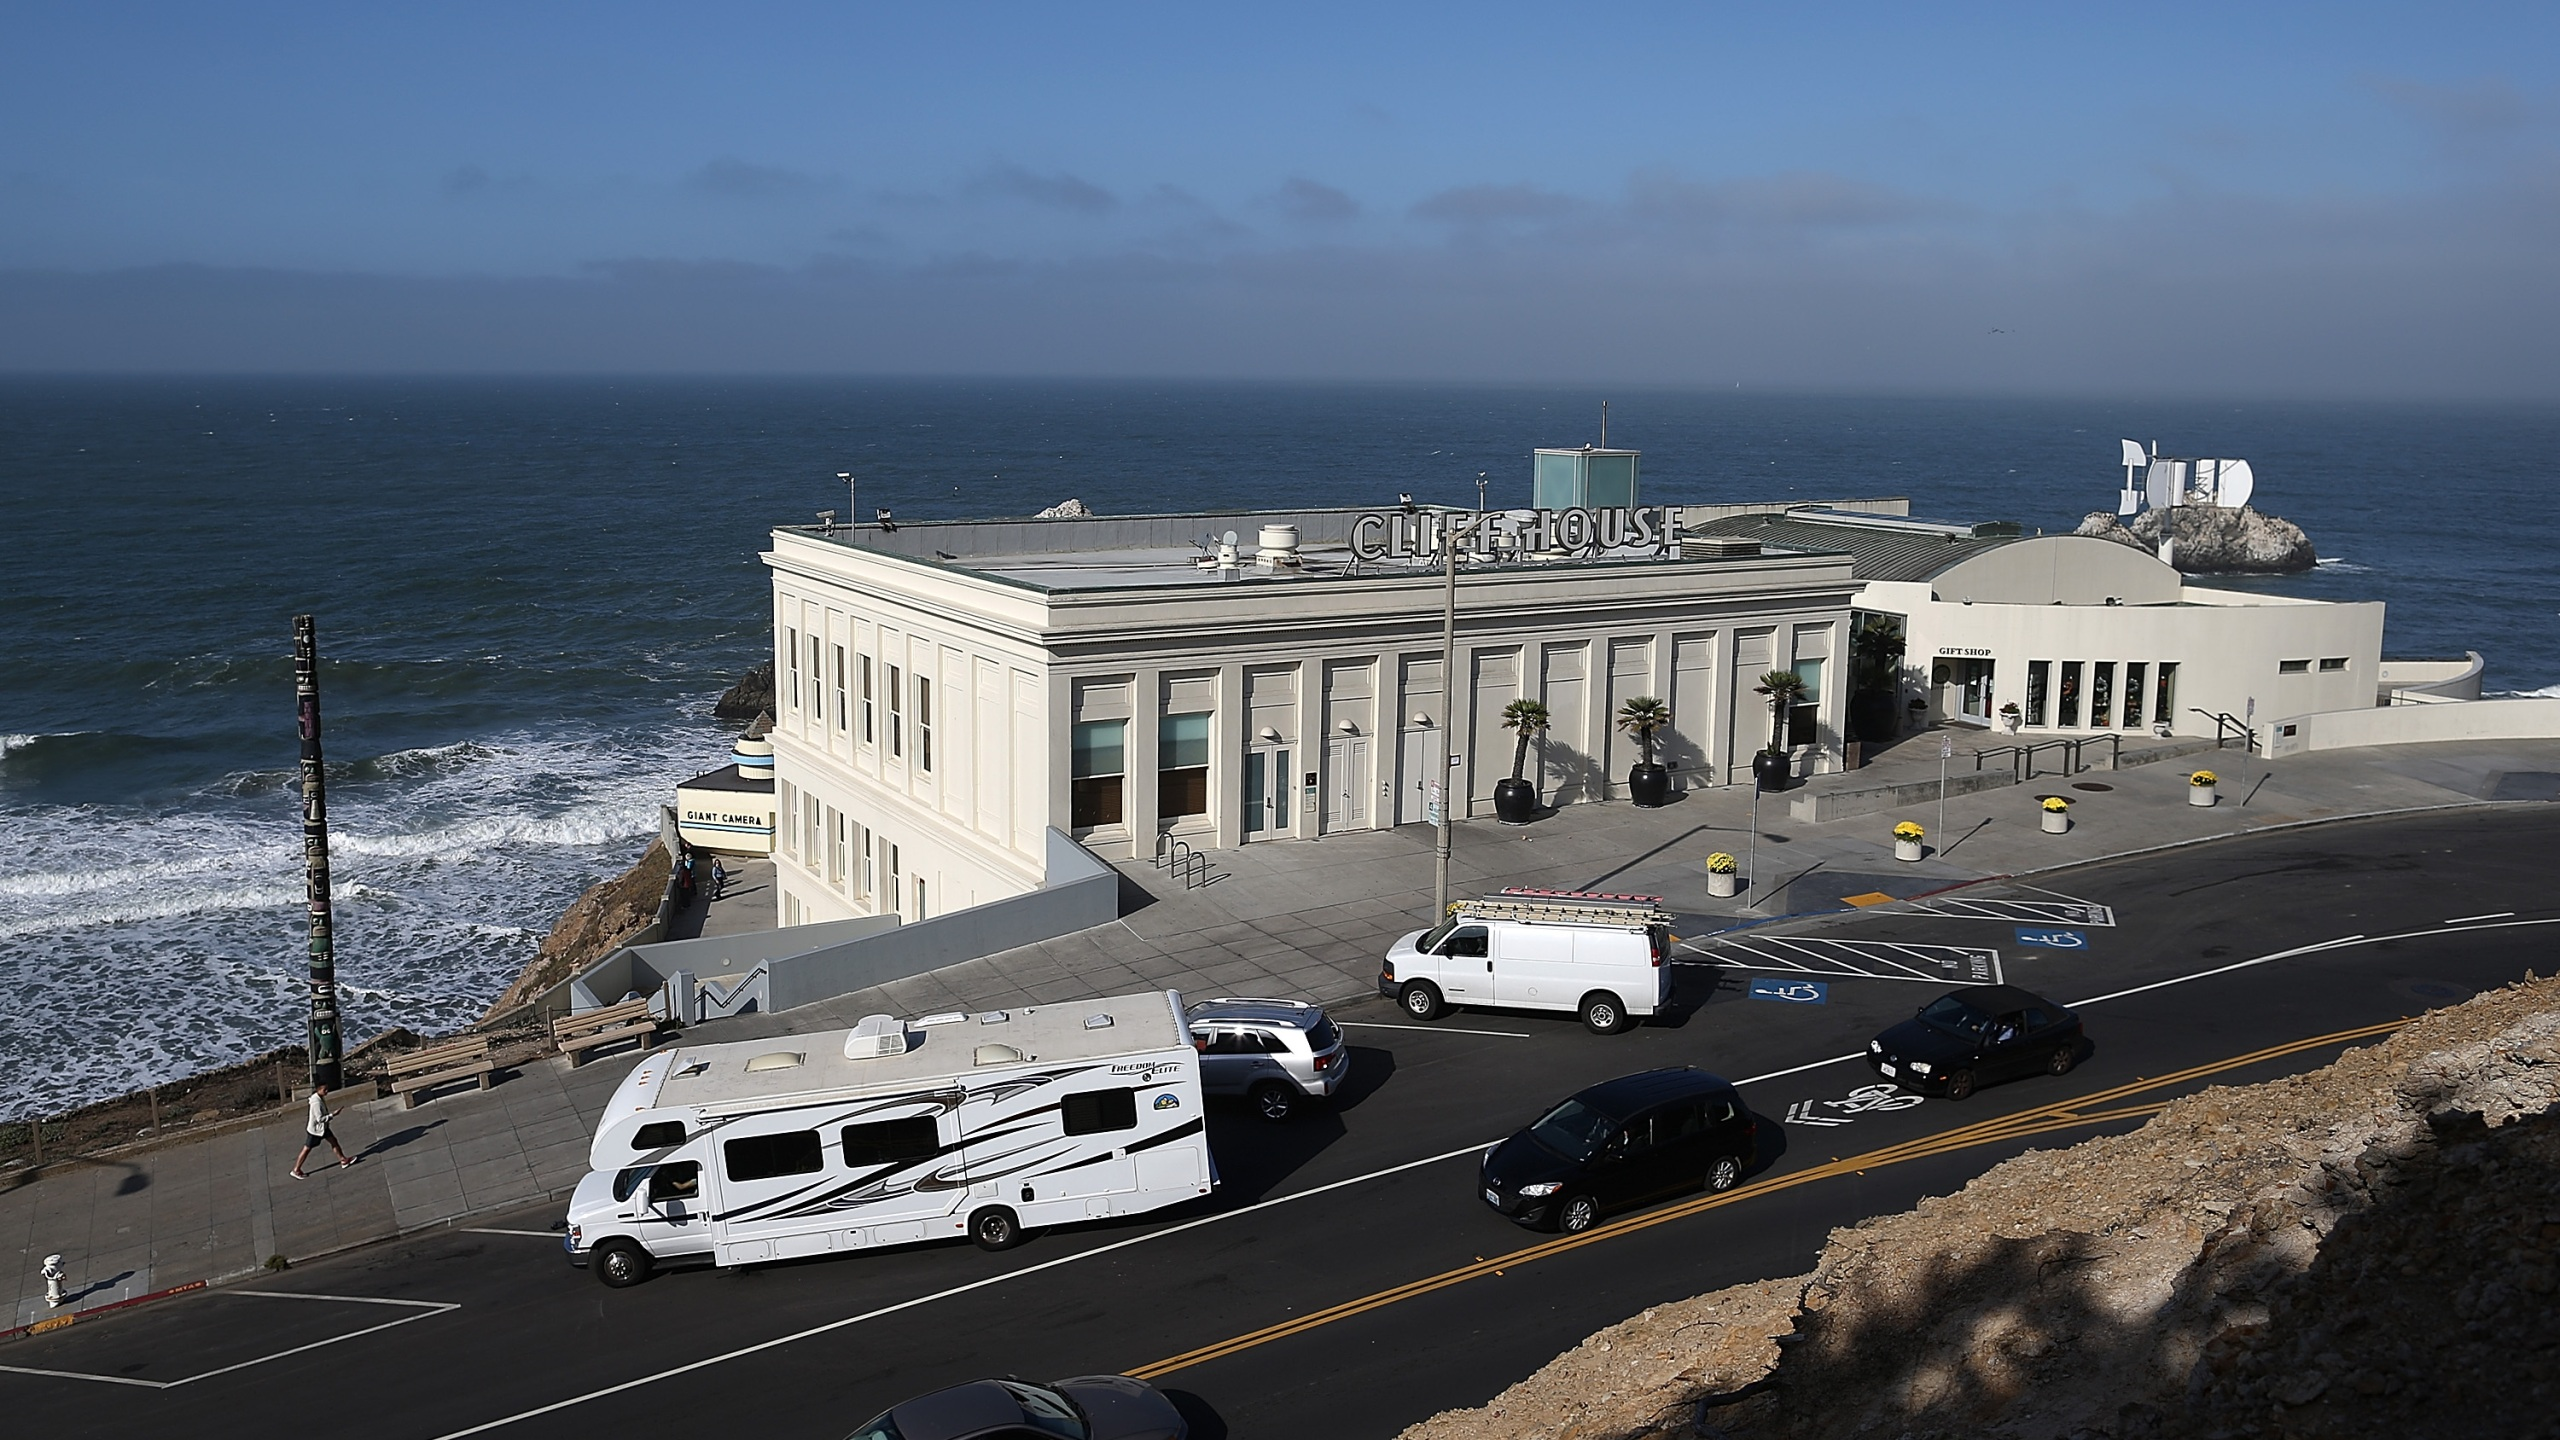 A view of the Cliff House restaurant on October 10, 2013 in San Francisco, California. (Photo by Justin Sullivan/Getty Images)